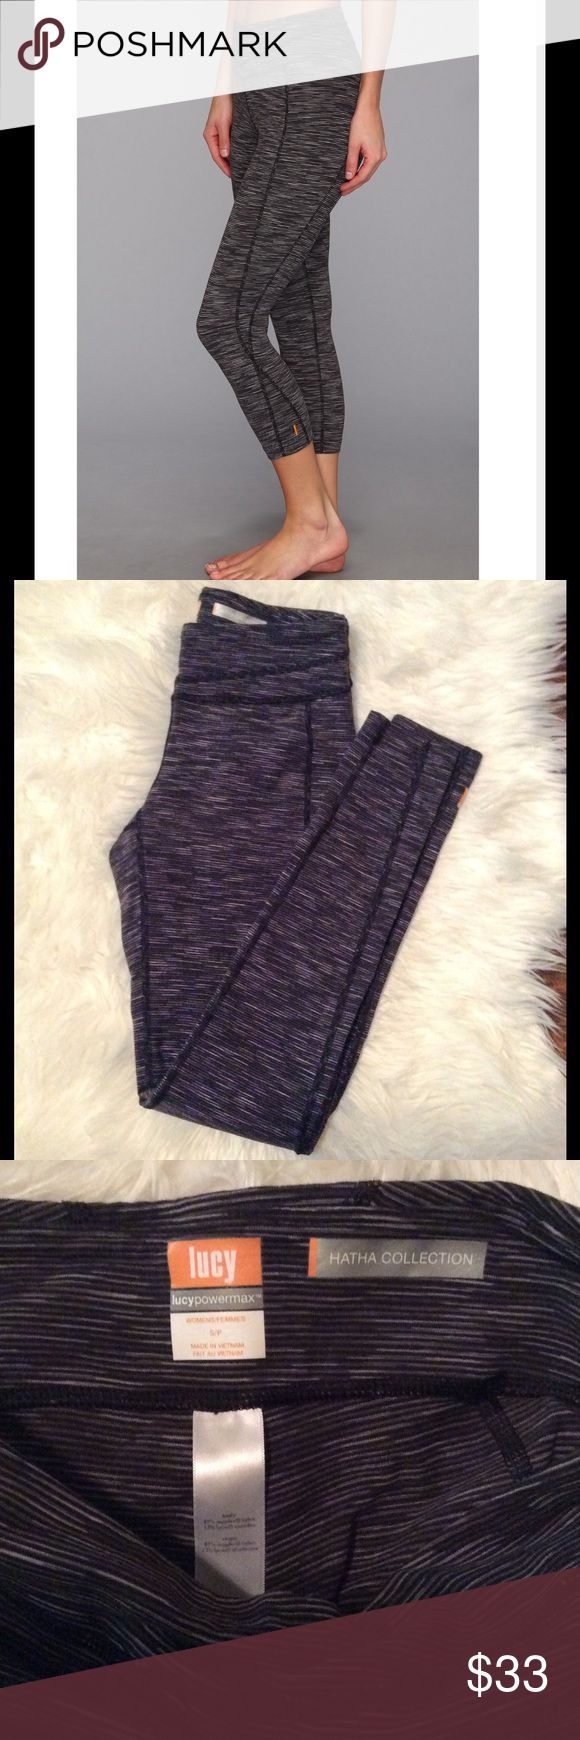 Lucy Hatha legging EUC Lucy athletic wear Hatha legging. These are very good quality, and rival lululemon. Size small. Lucy Pants Leggings